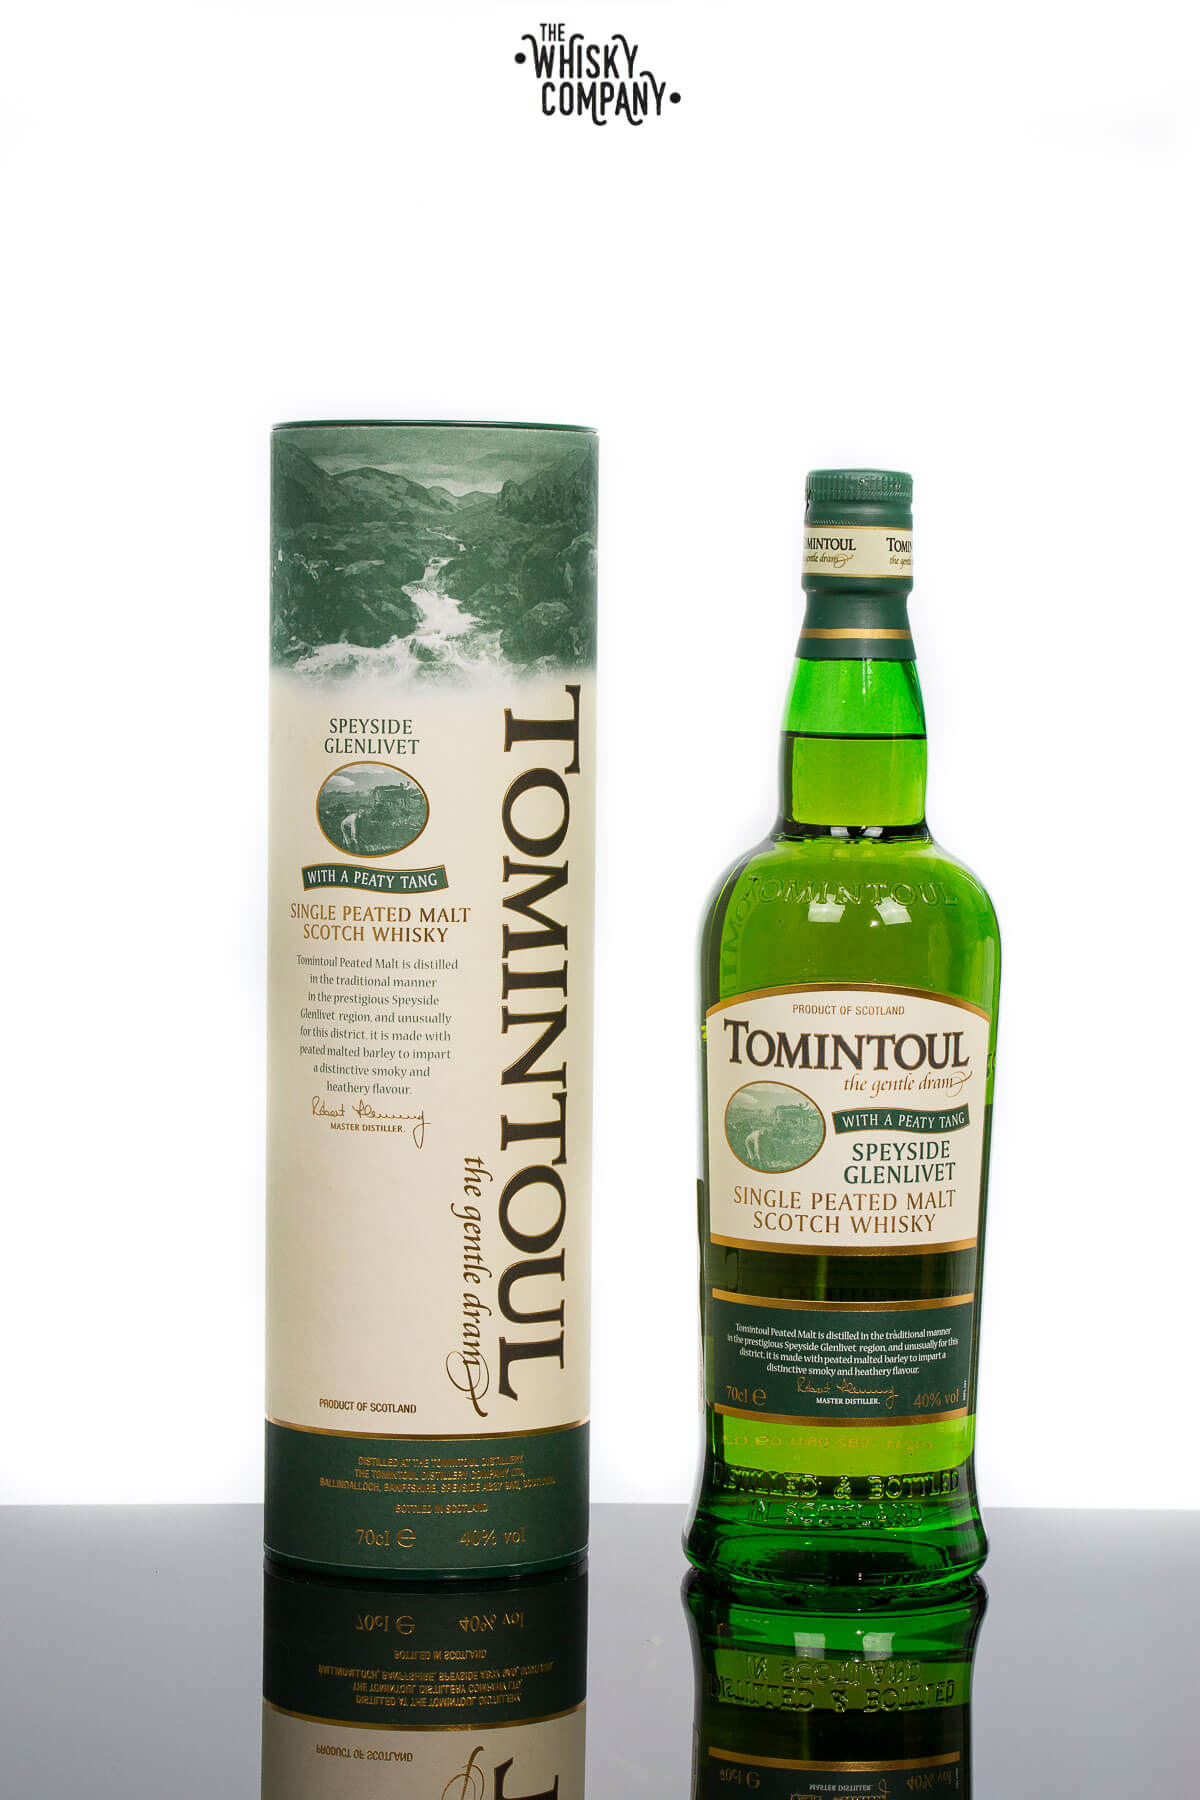 Tomintoul Peaty Tang Speyside Single Malt Scotch Whisky (700ml)